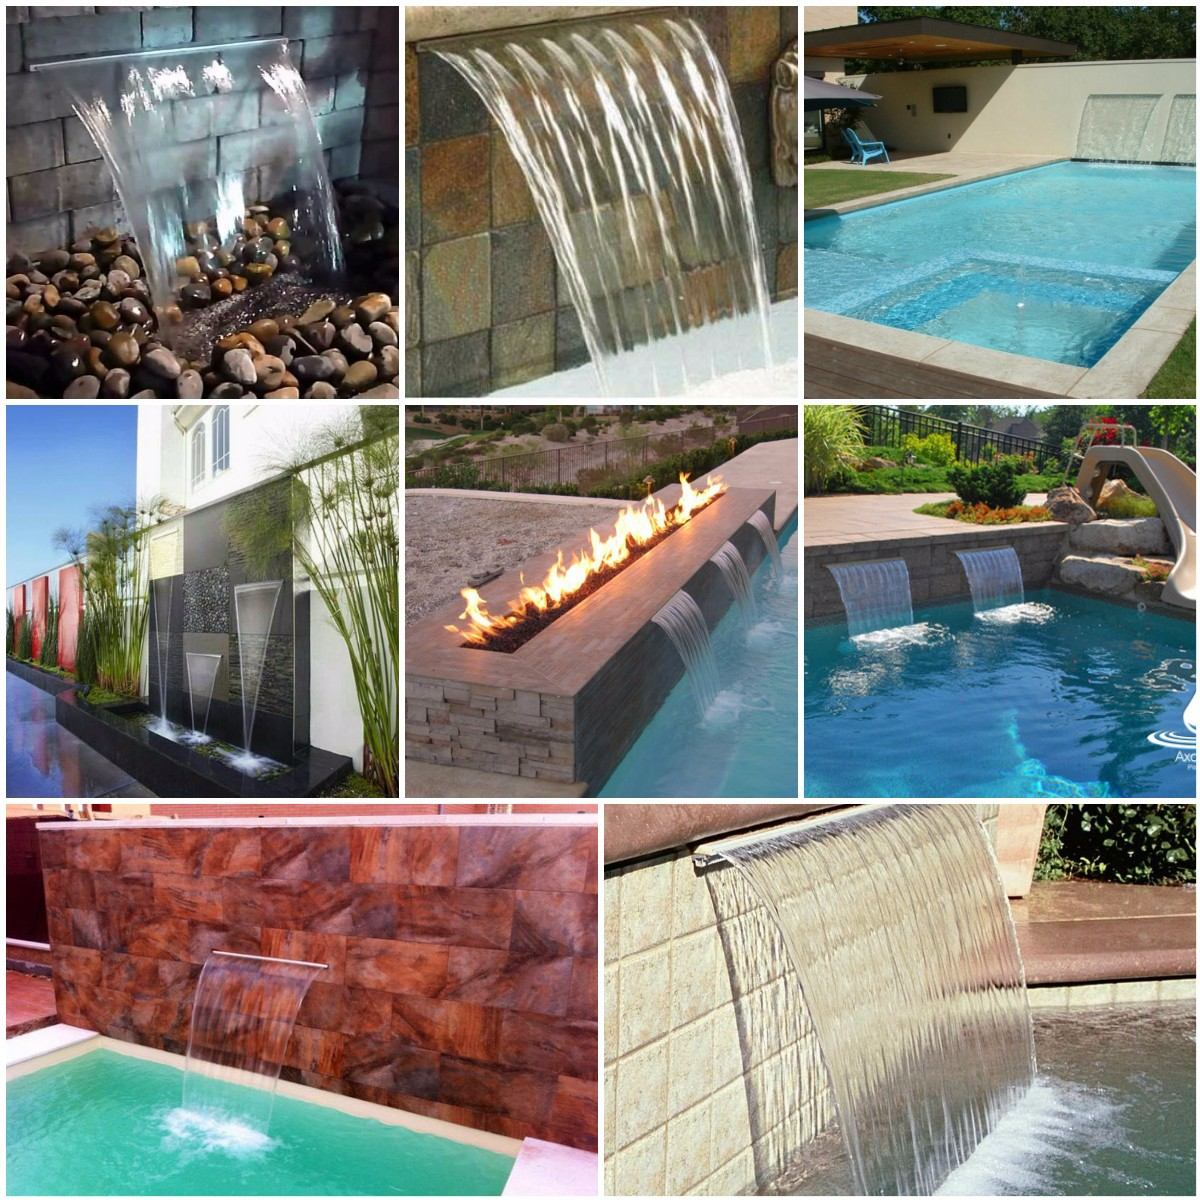 Cascadas decorativas para piscina fuentes jacuzzi jardin for Fuentes decorativas de pared